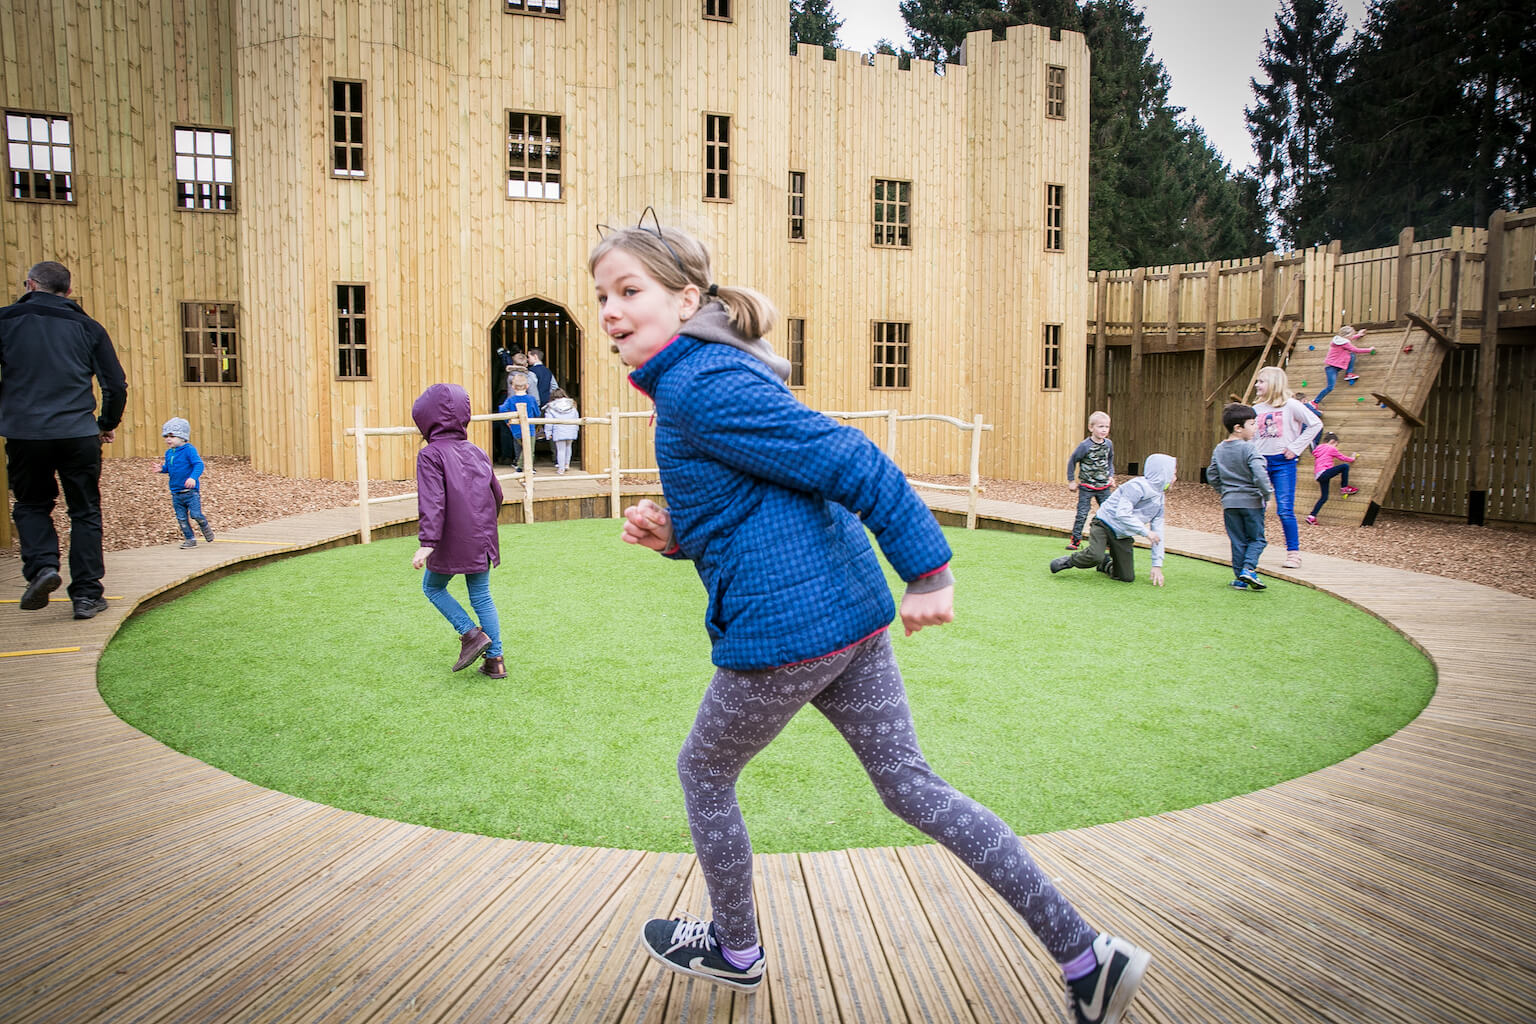 Play and run wild inside Knights Stronghold at Leeds Castle Open by CAP.Co Adventure Play lead